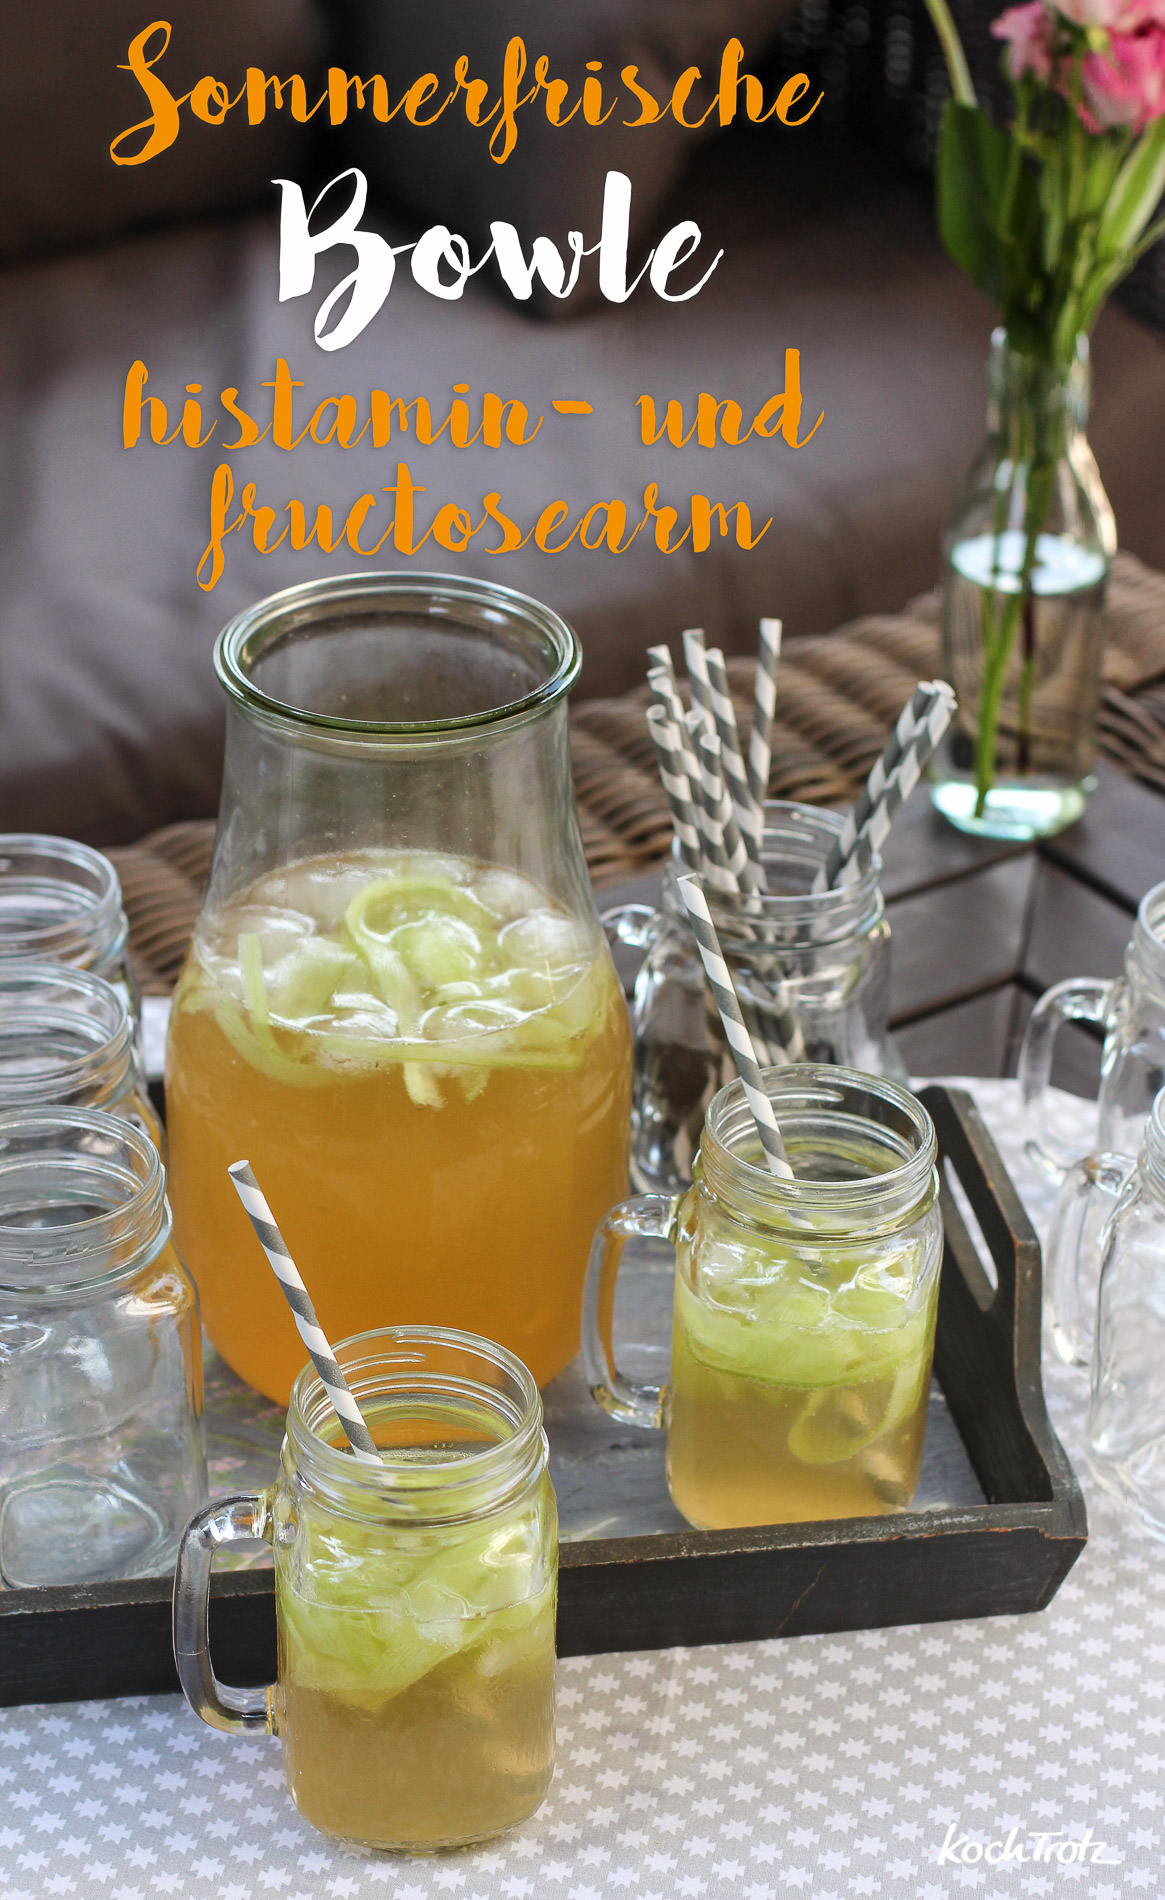 bowle-fructosearm-histaminarm-mit-oder-ohne-alkohol-1-3